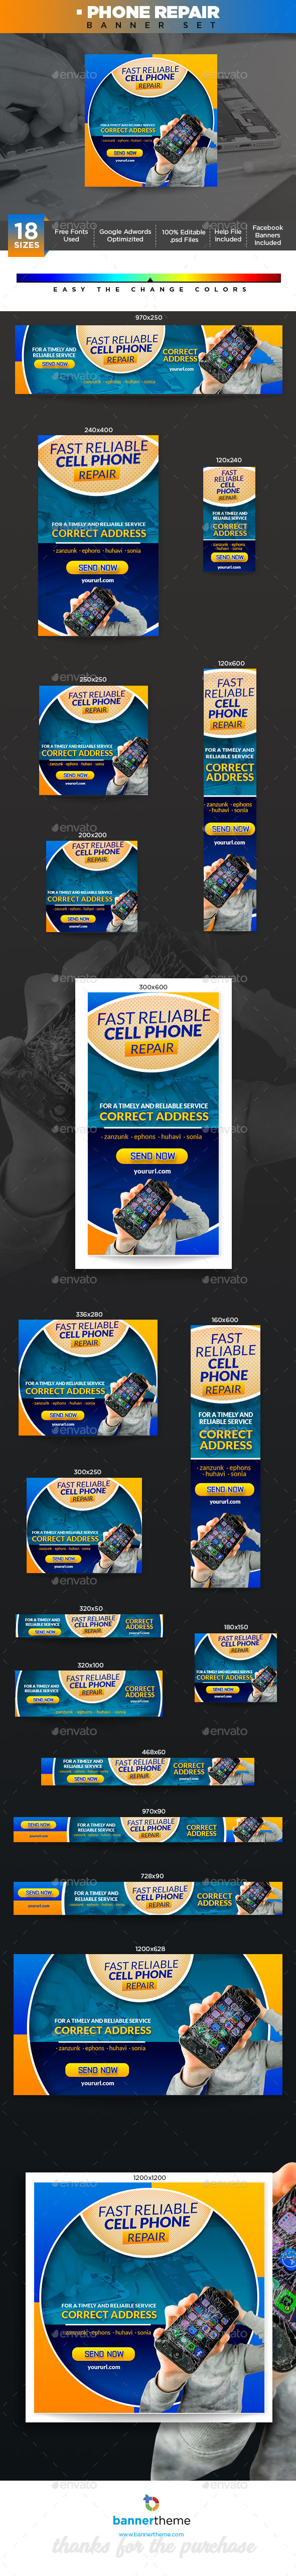 Phone Repair Banner - Banners & Ads Web Elements